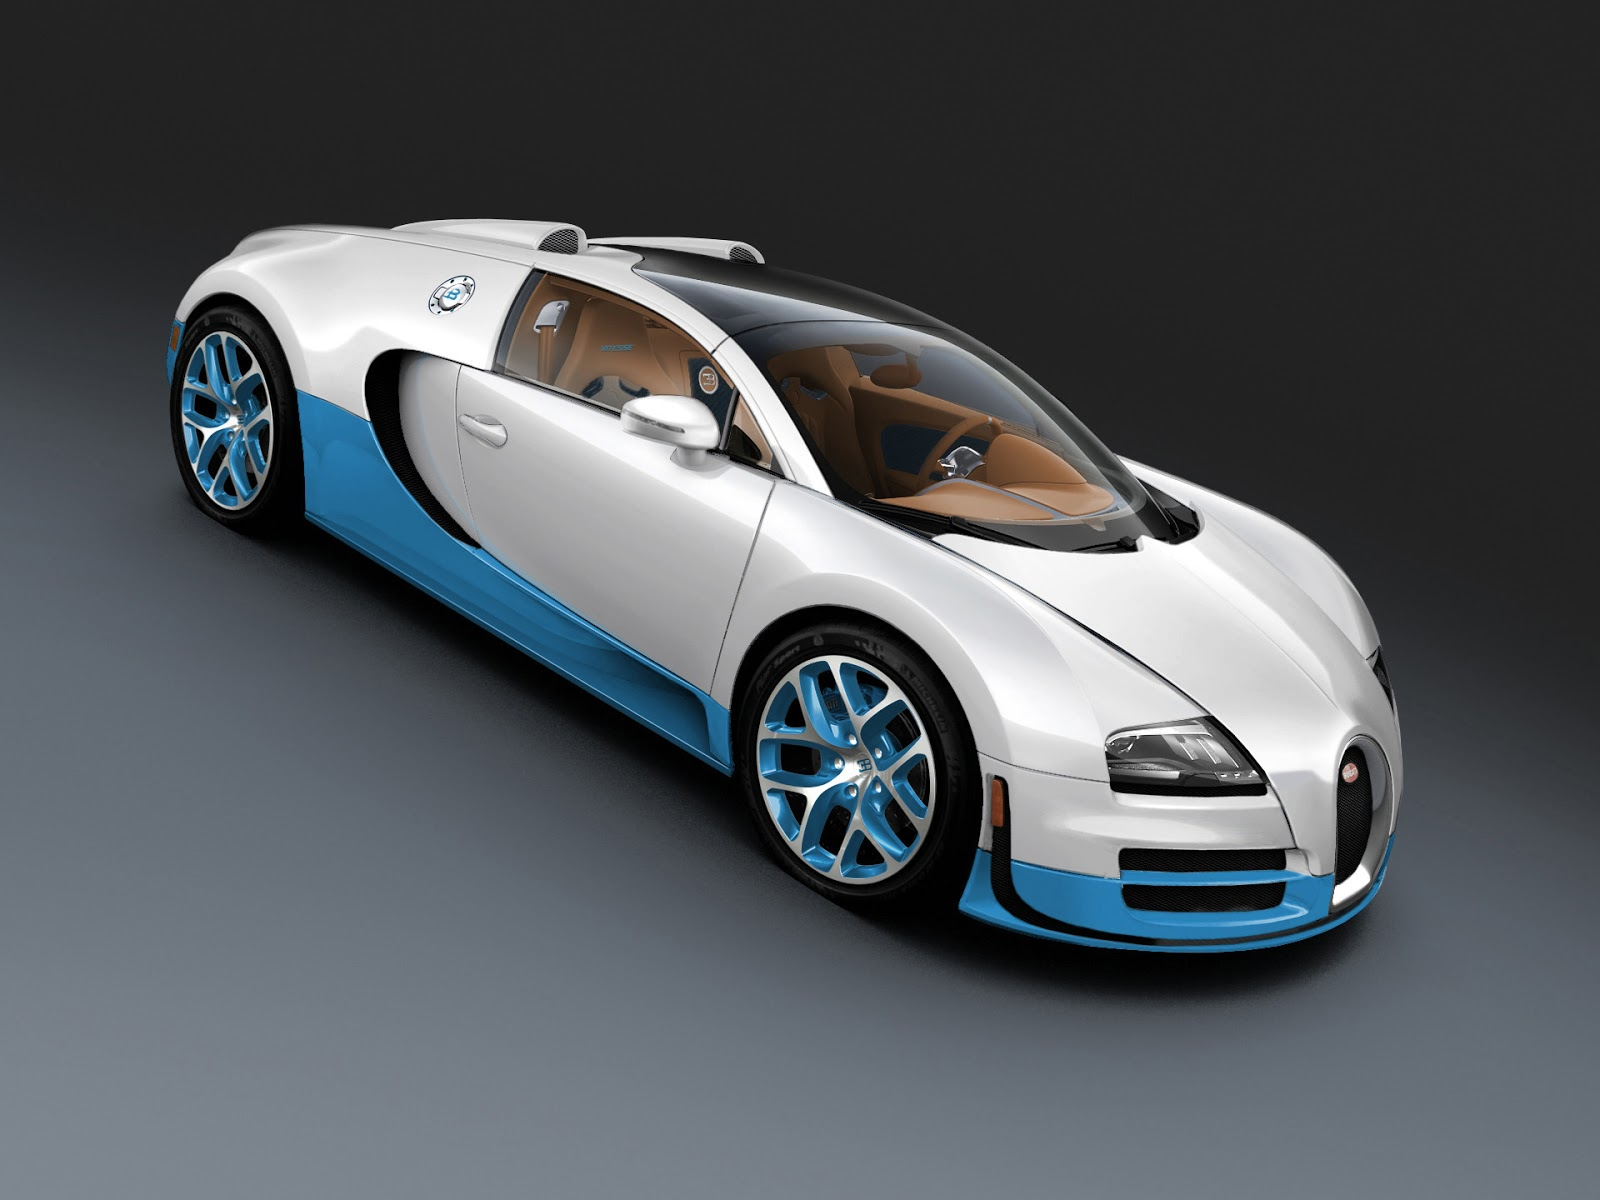 2012 bugatti veyron grand sport vitesse special edition. Black Bedroom Furniture Sets. Home Design Ideas